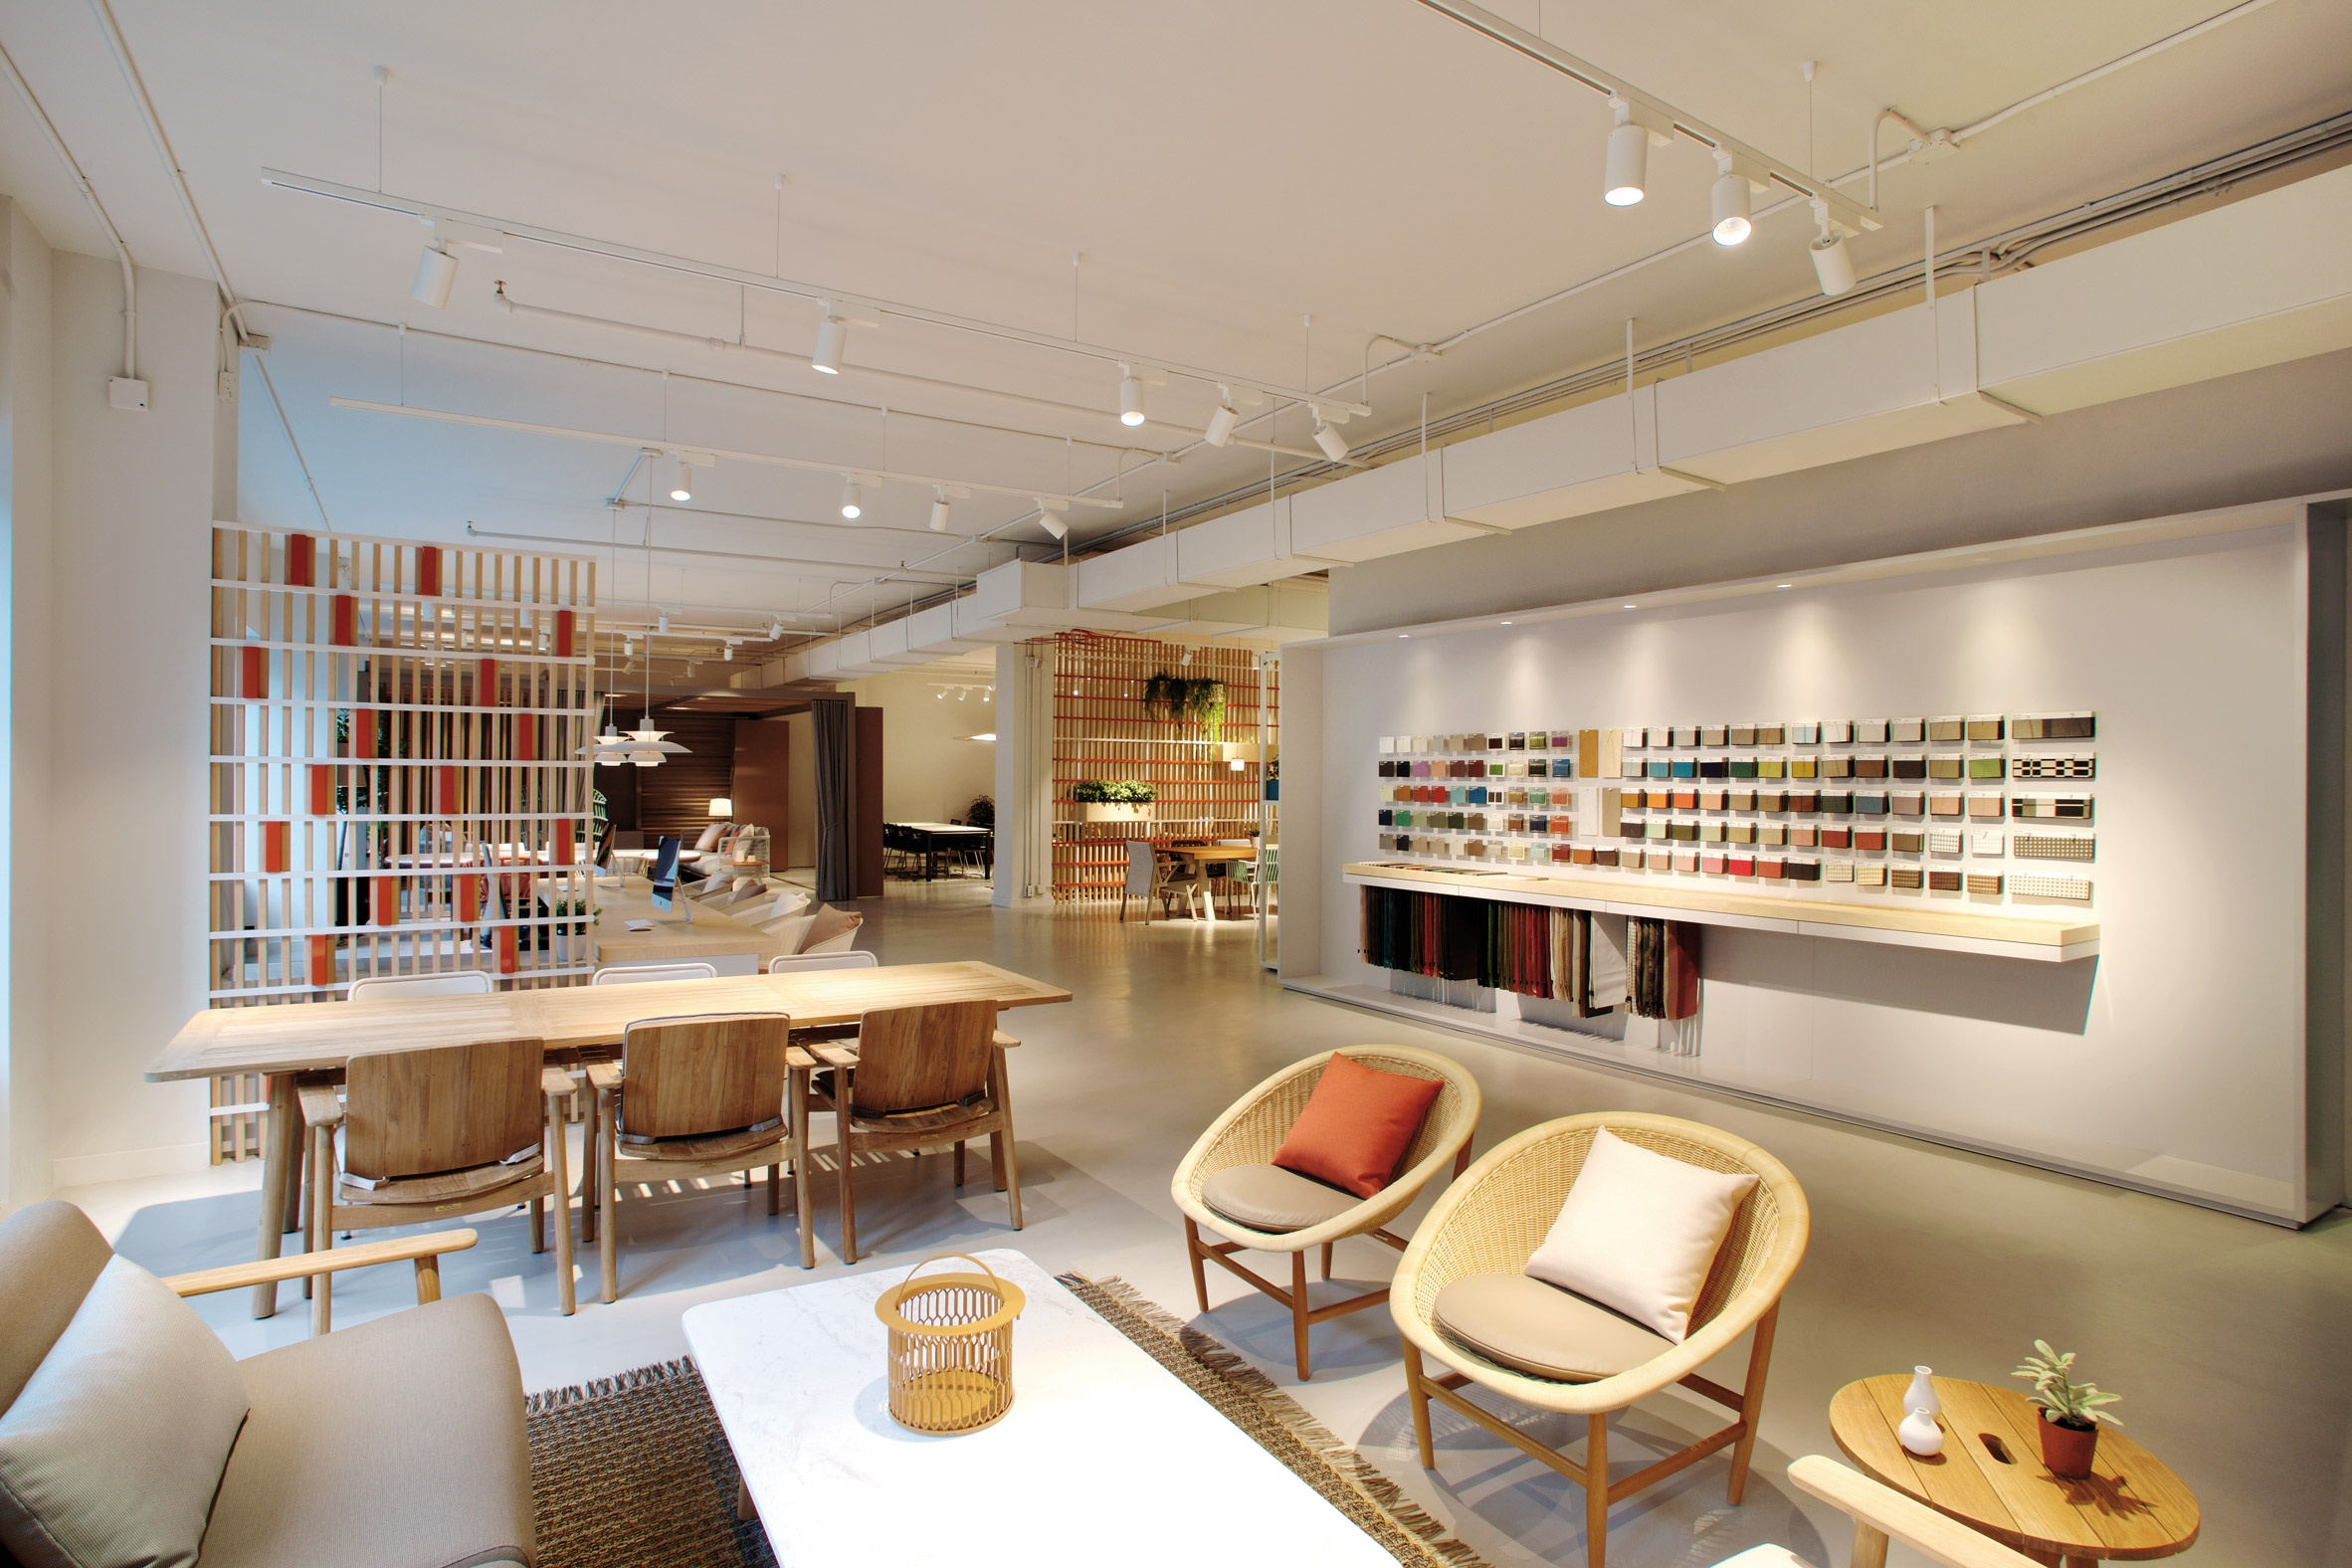 kettal-showroom-new-york-city-usa_dezeen_2364_col_5